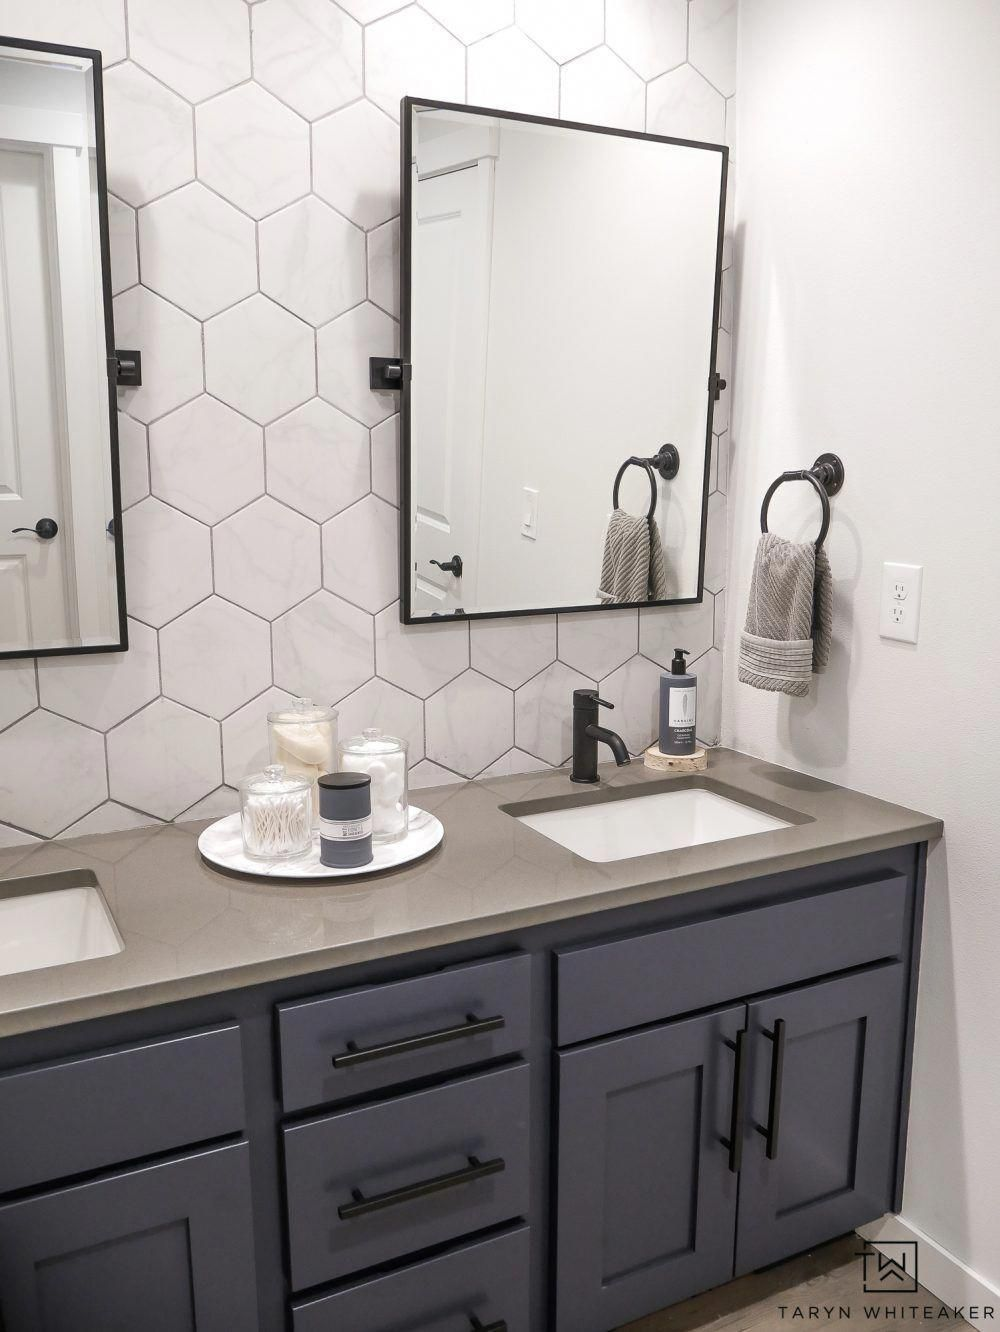 This Double Sink Bathroom Vanity Was Just A Basic Bathroom And Now Has It S Own Custom Mod Double Sink Bathroom Modern Bathroom Vanity Bathroom Vanity Makeover